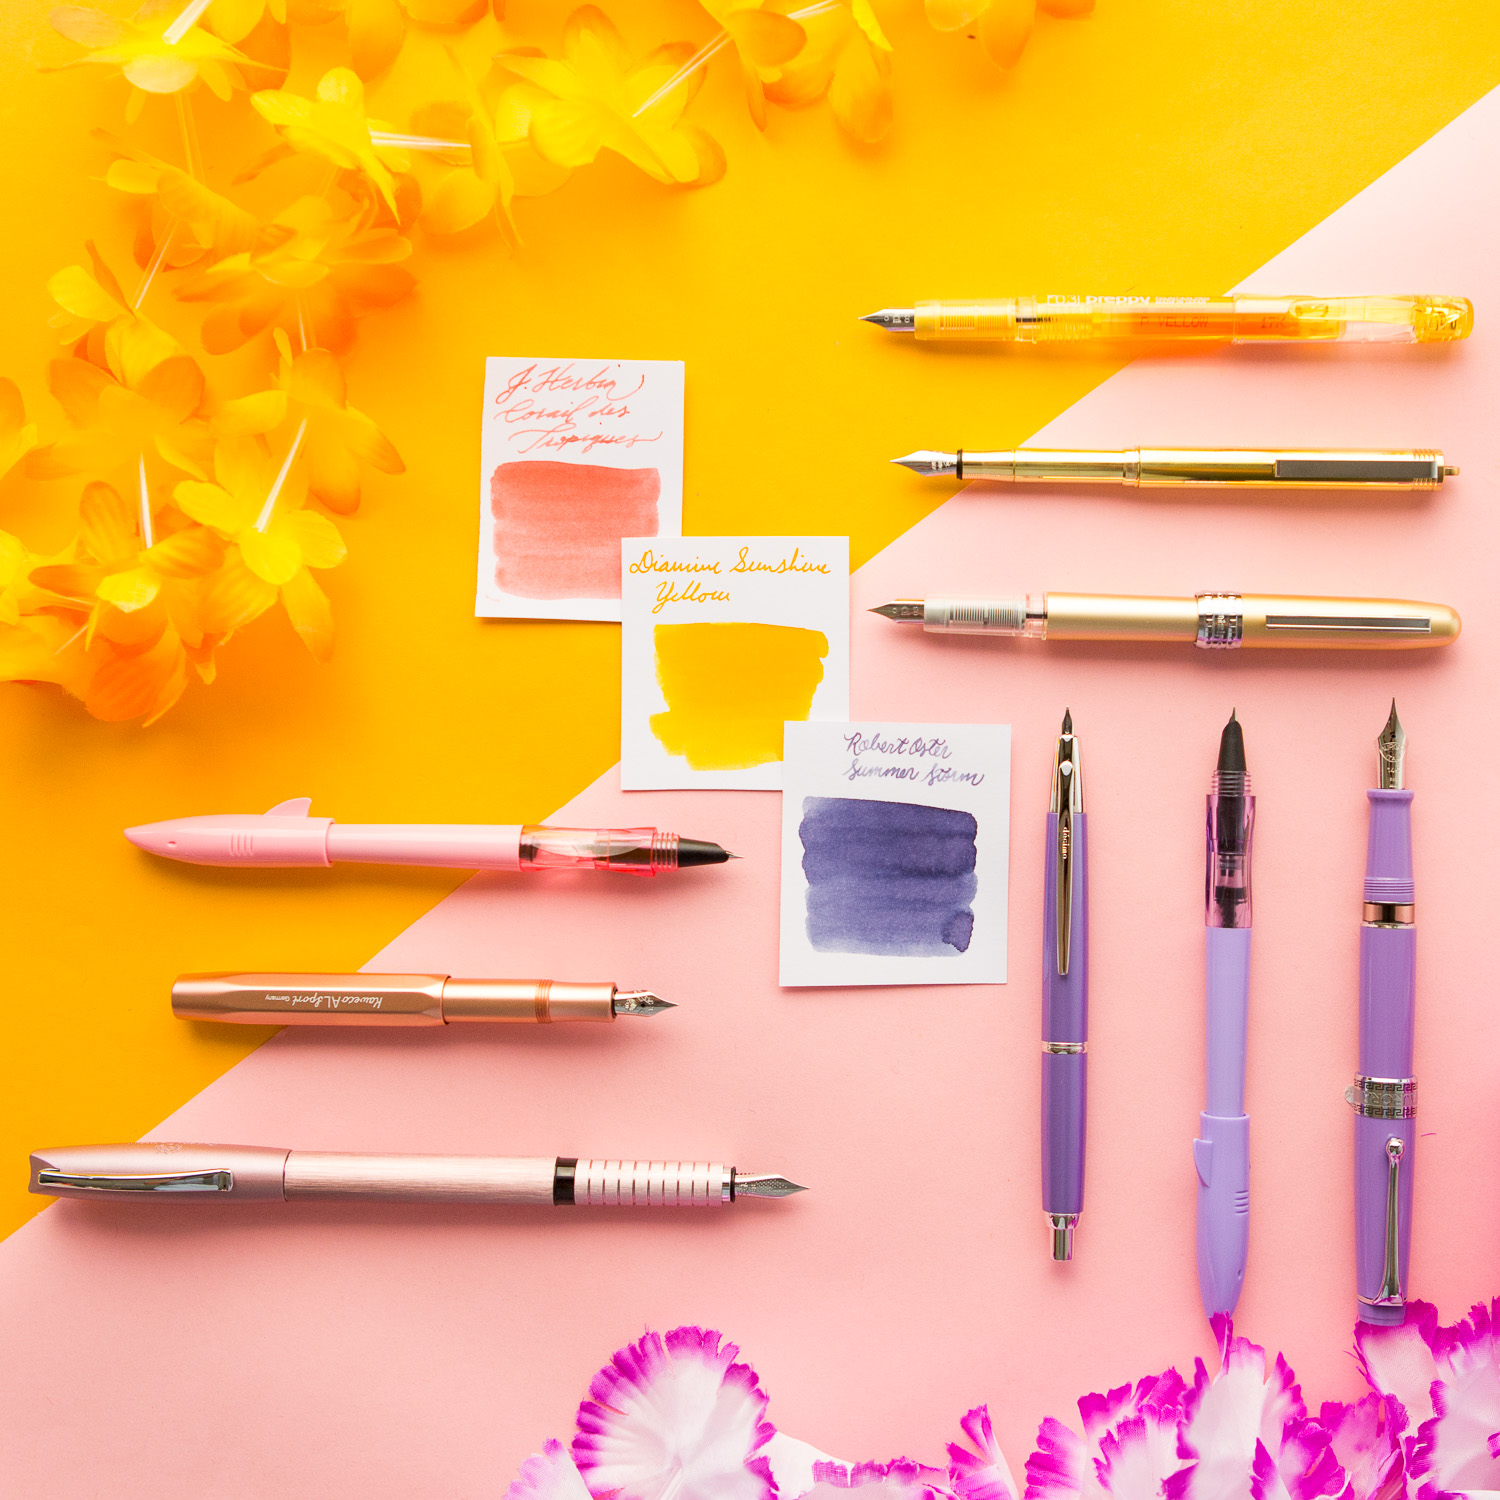 A summery spread of pink, purple, and orange fountain pens and accessories.